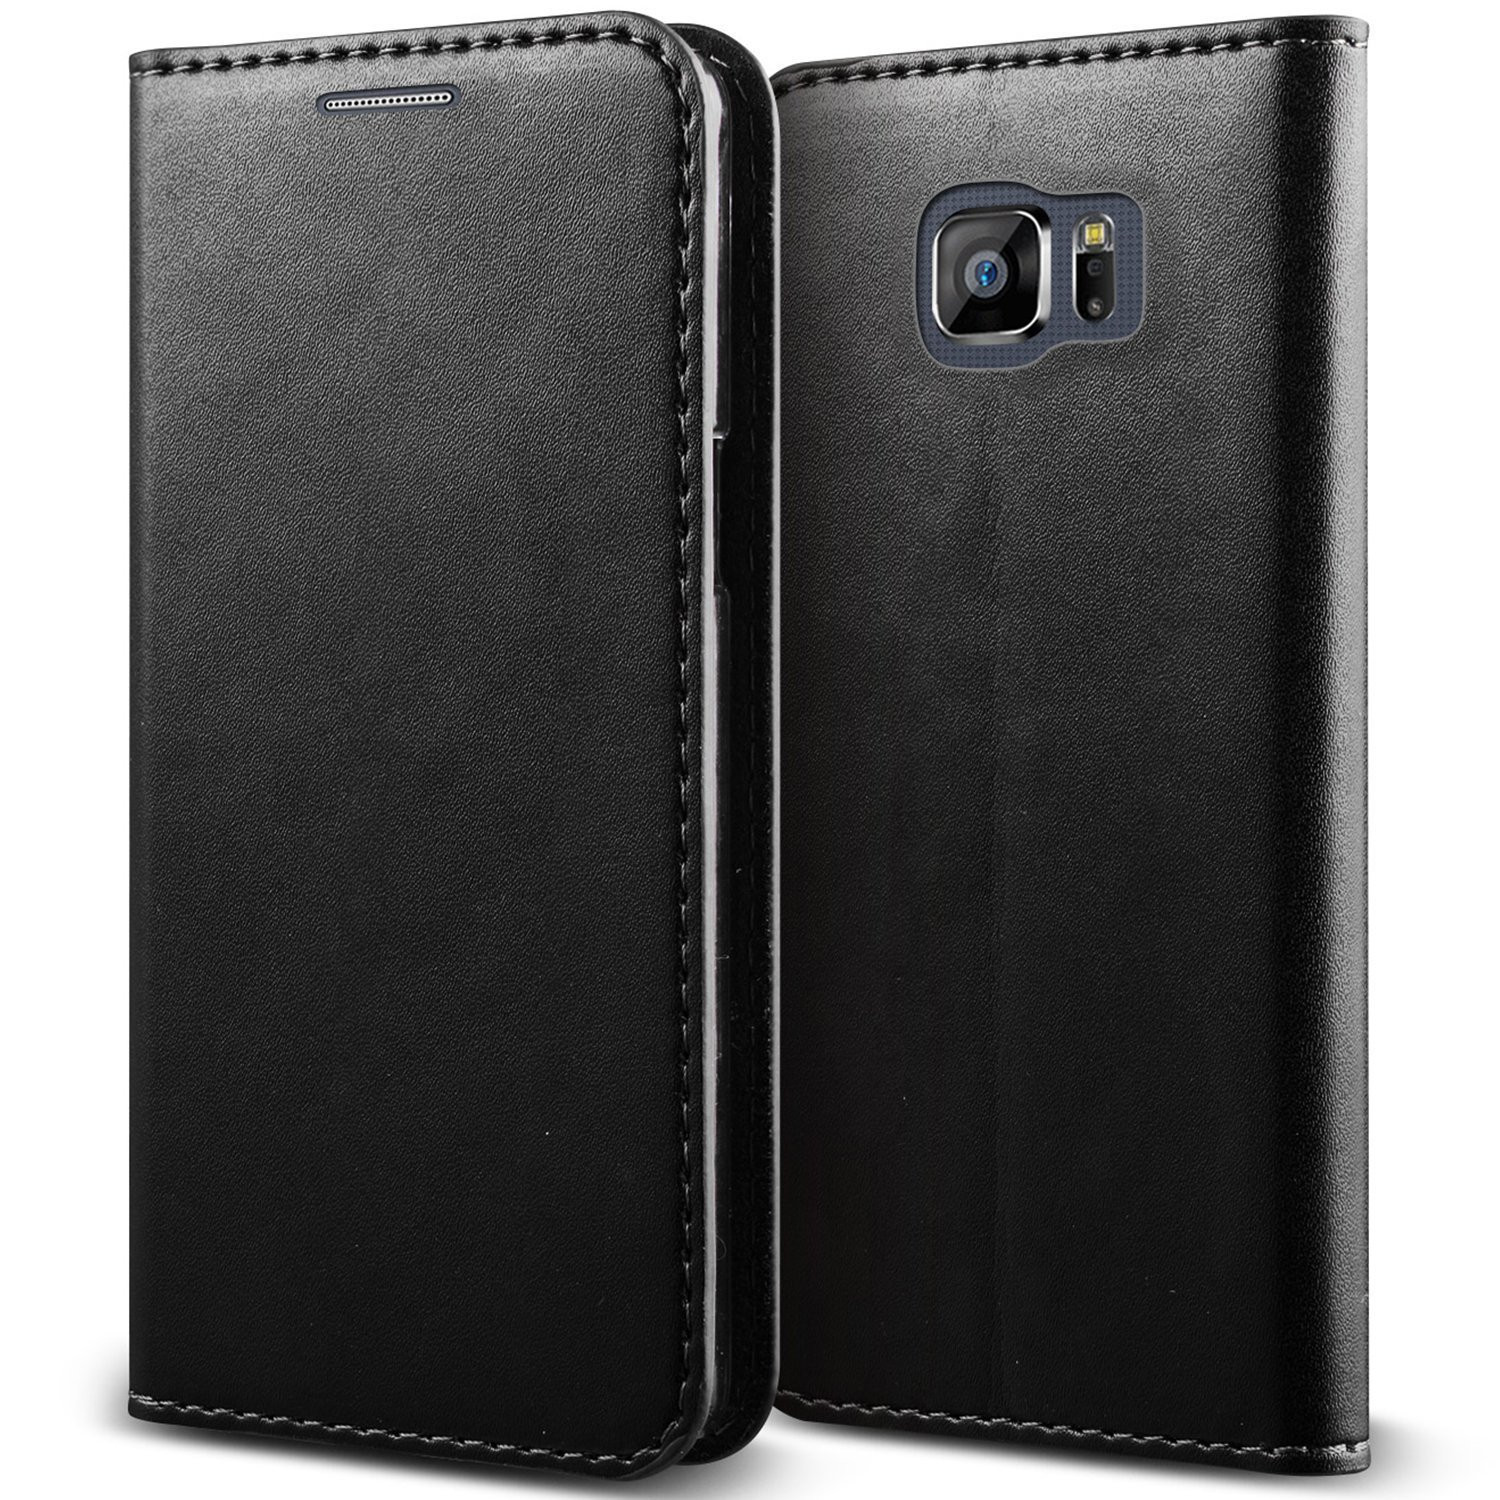 Galaxy Note 5 Case, Genuine Authentic Leather Magnetic Flip Fold[Kickstand] Wallet Case with ID & Credit Card Slots for Samsung Galaxy Note 5 - Black